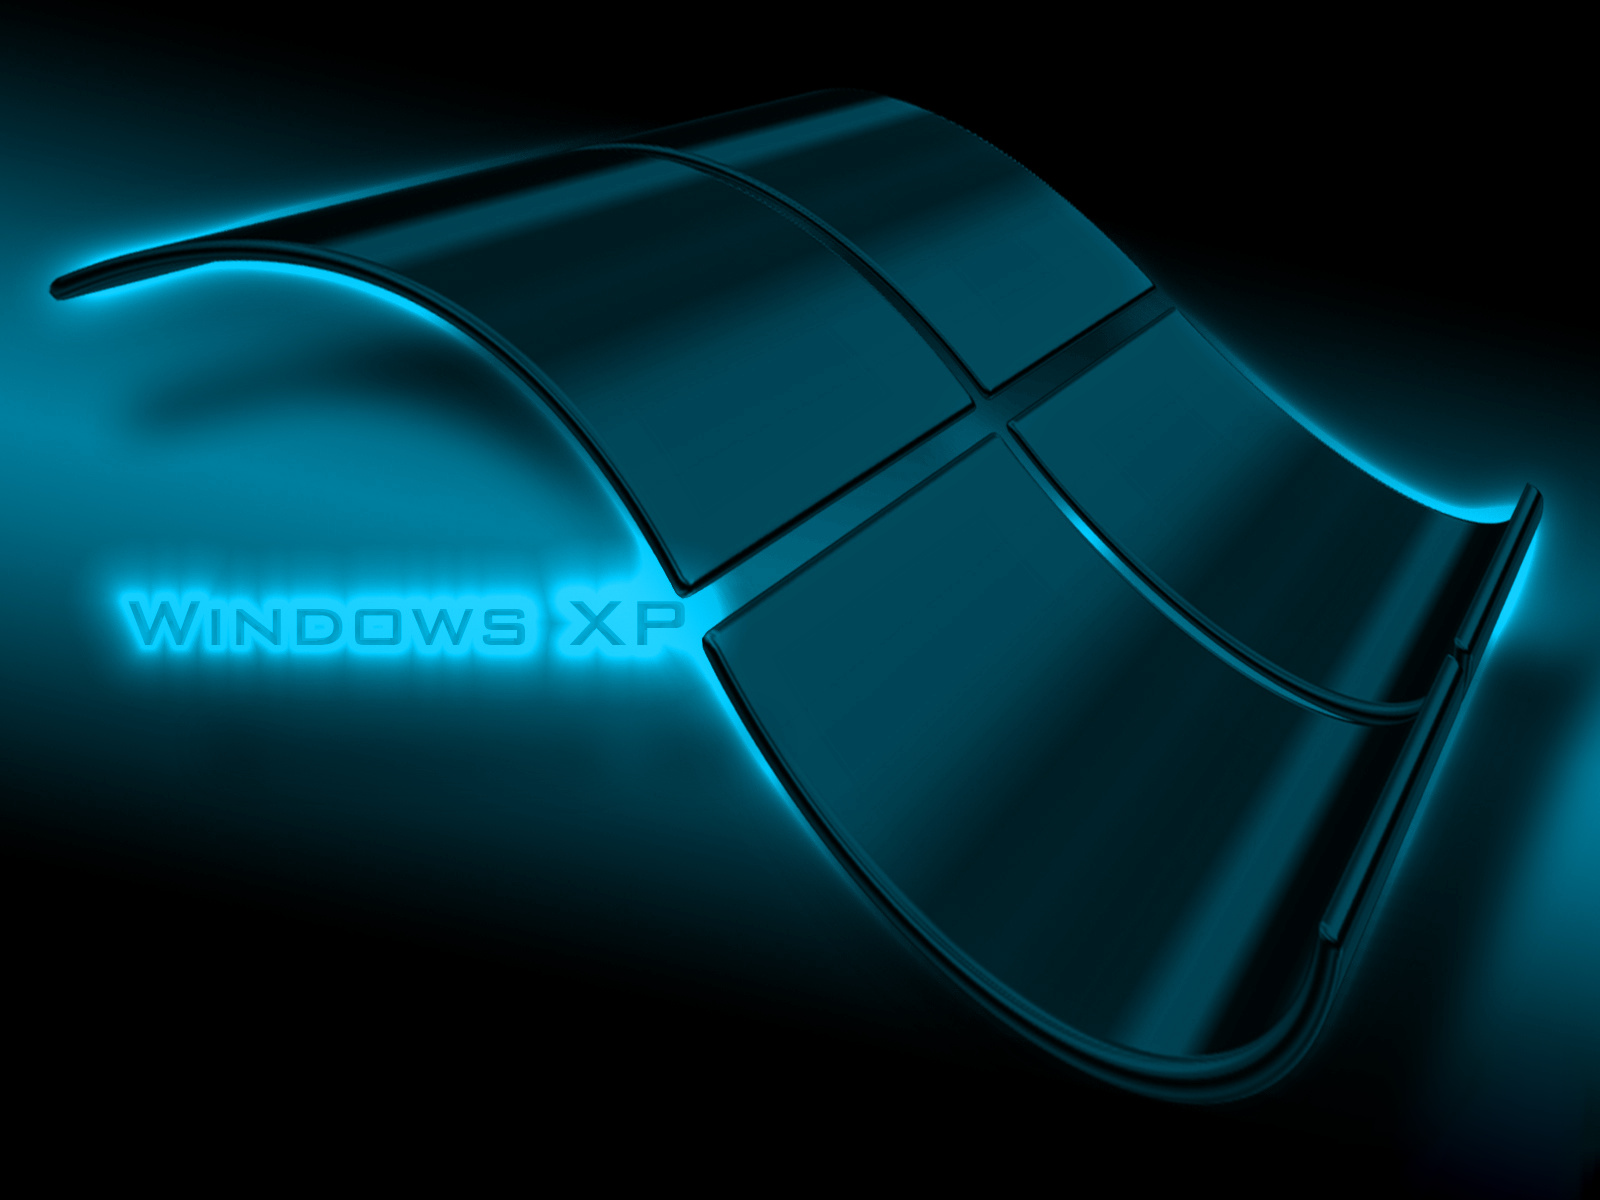 Windows Xp HD Wallpapers - Wallpapers